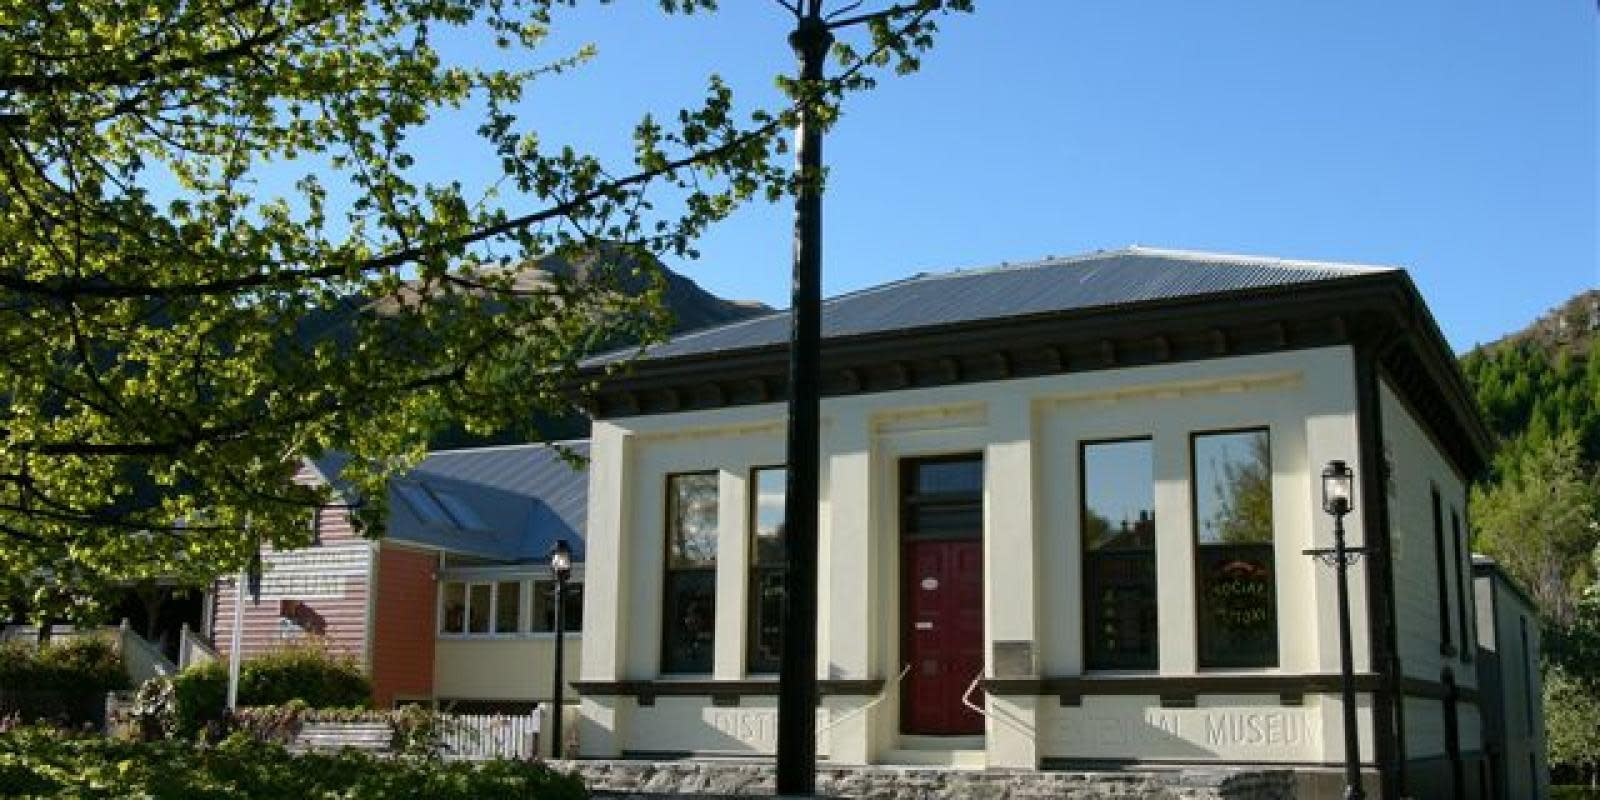 The Lakes District Museum in historic Arrowtown